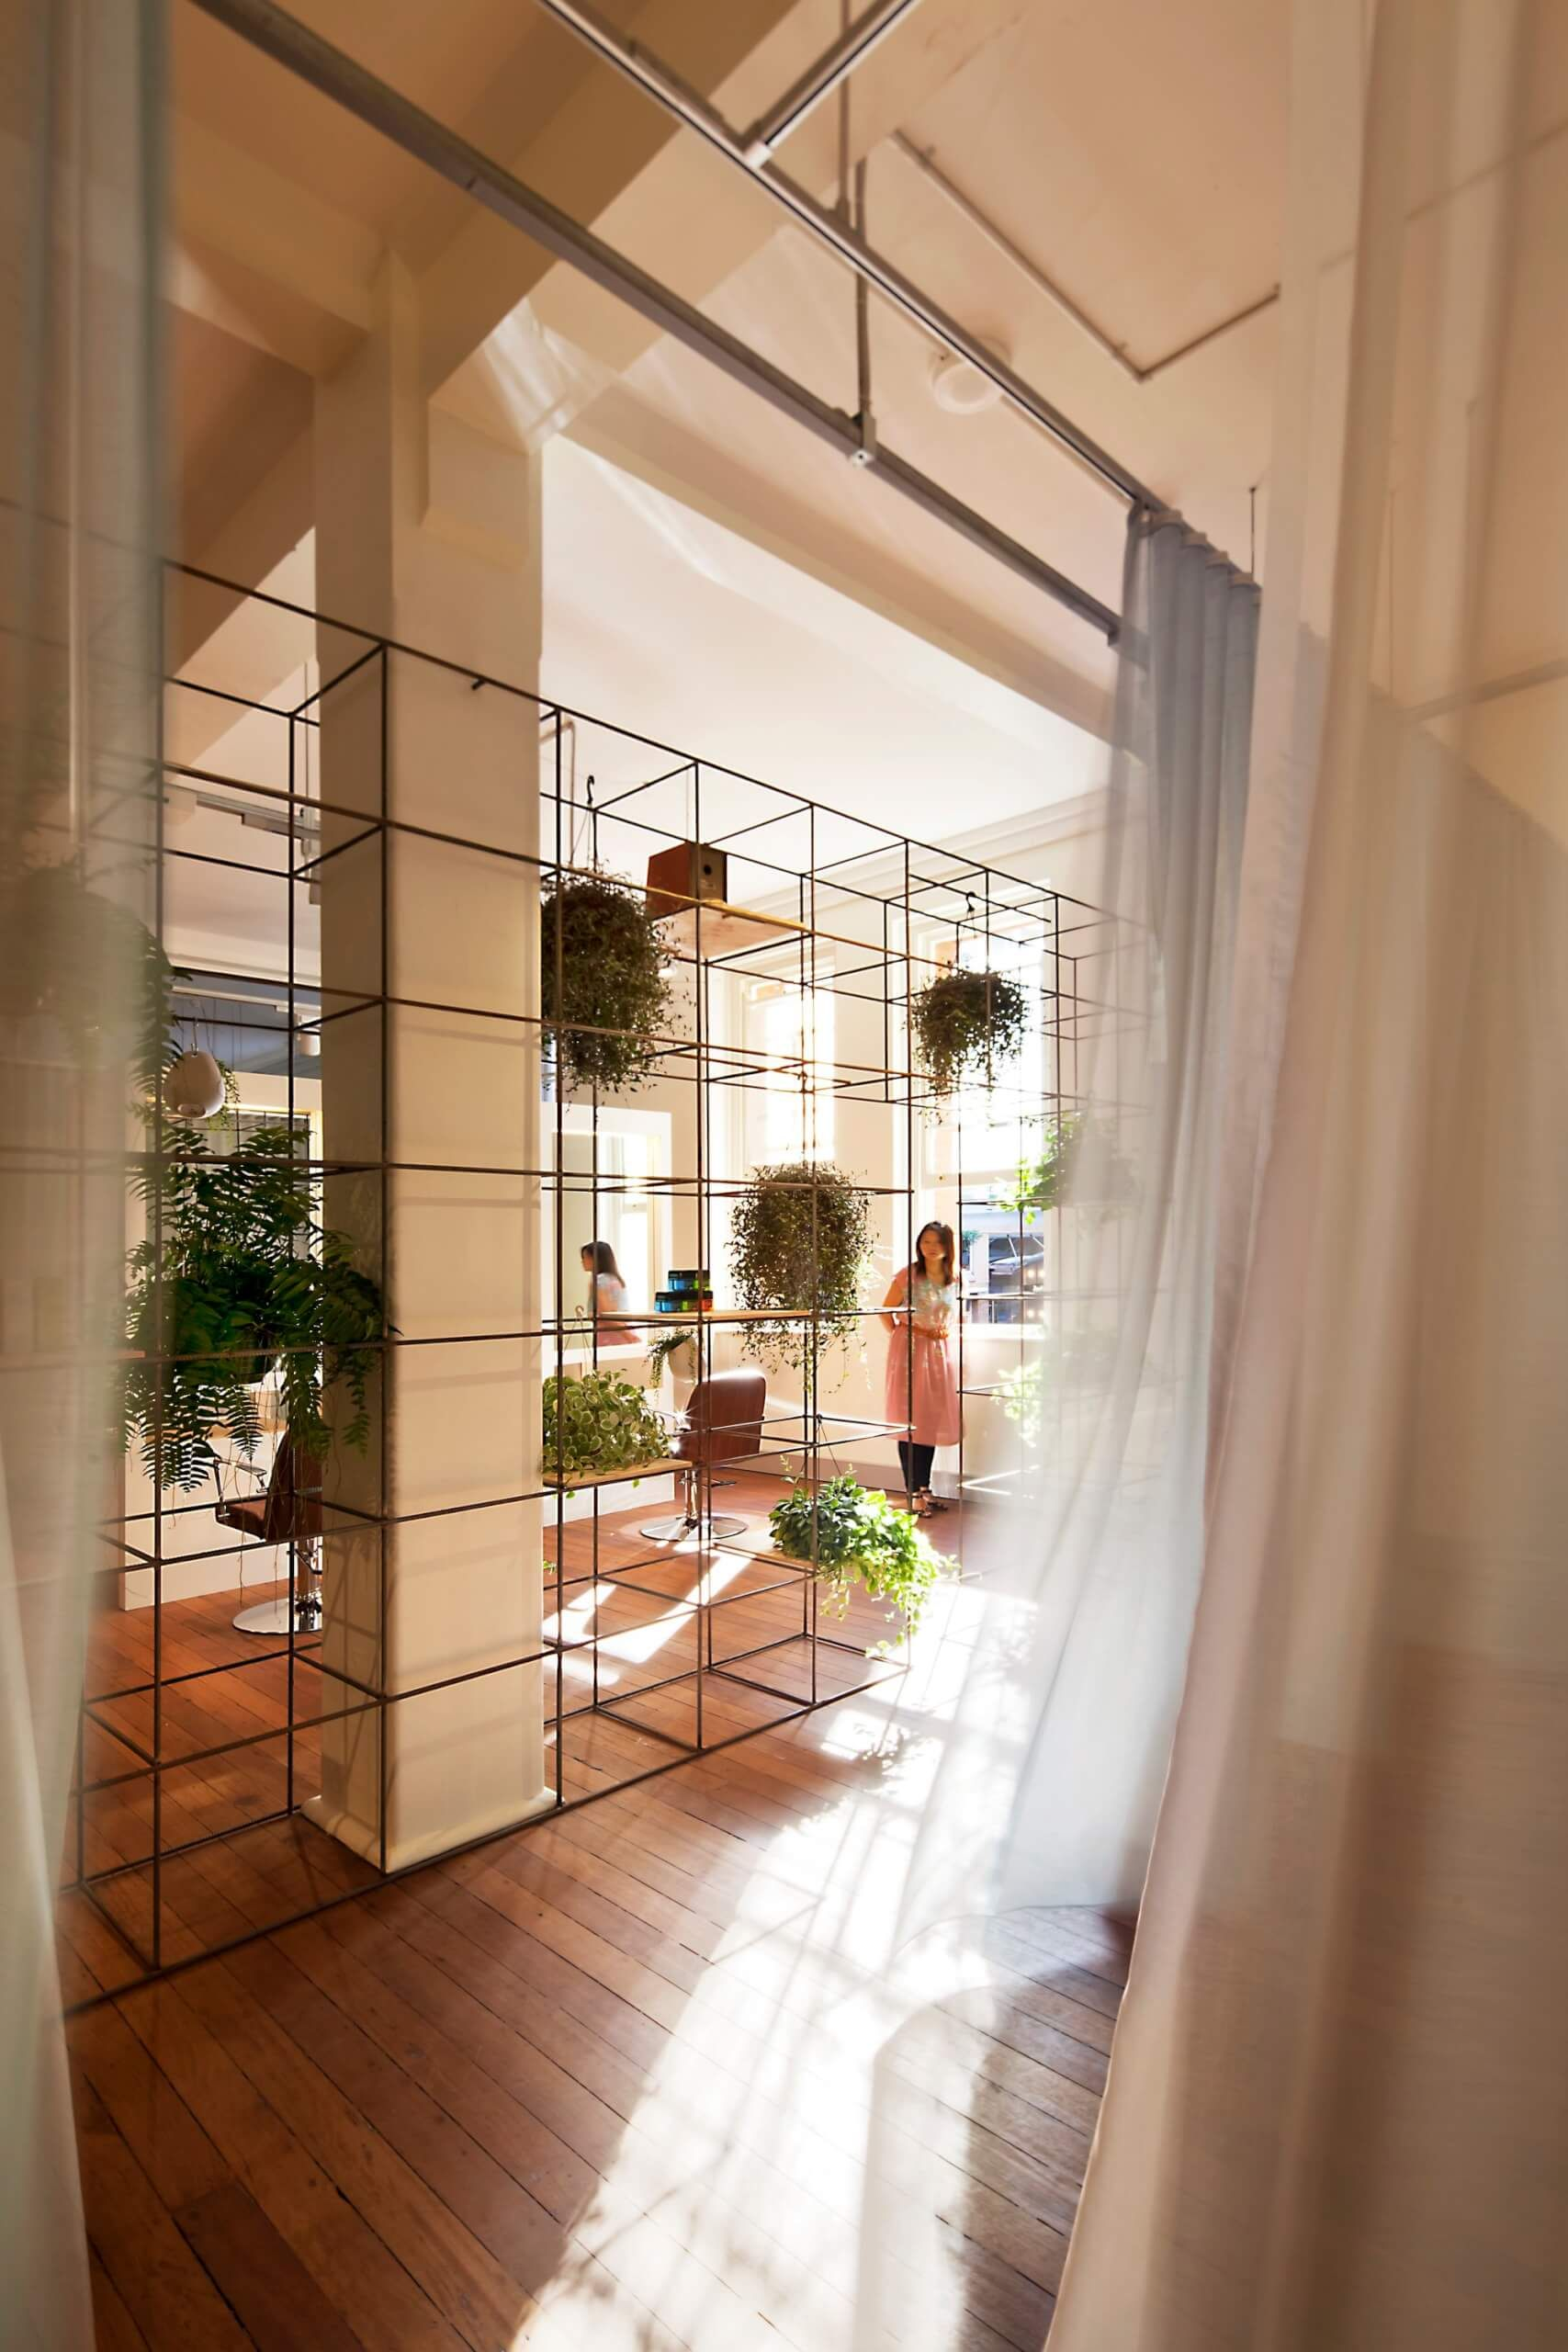 Metal Grid Holds Plants And Acts As Room Partition -